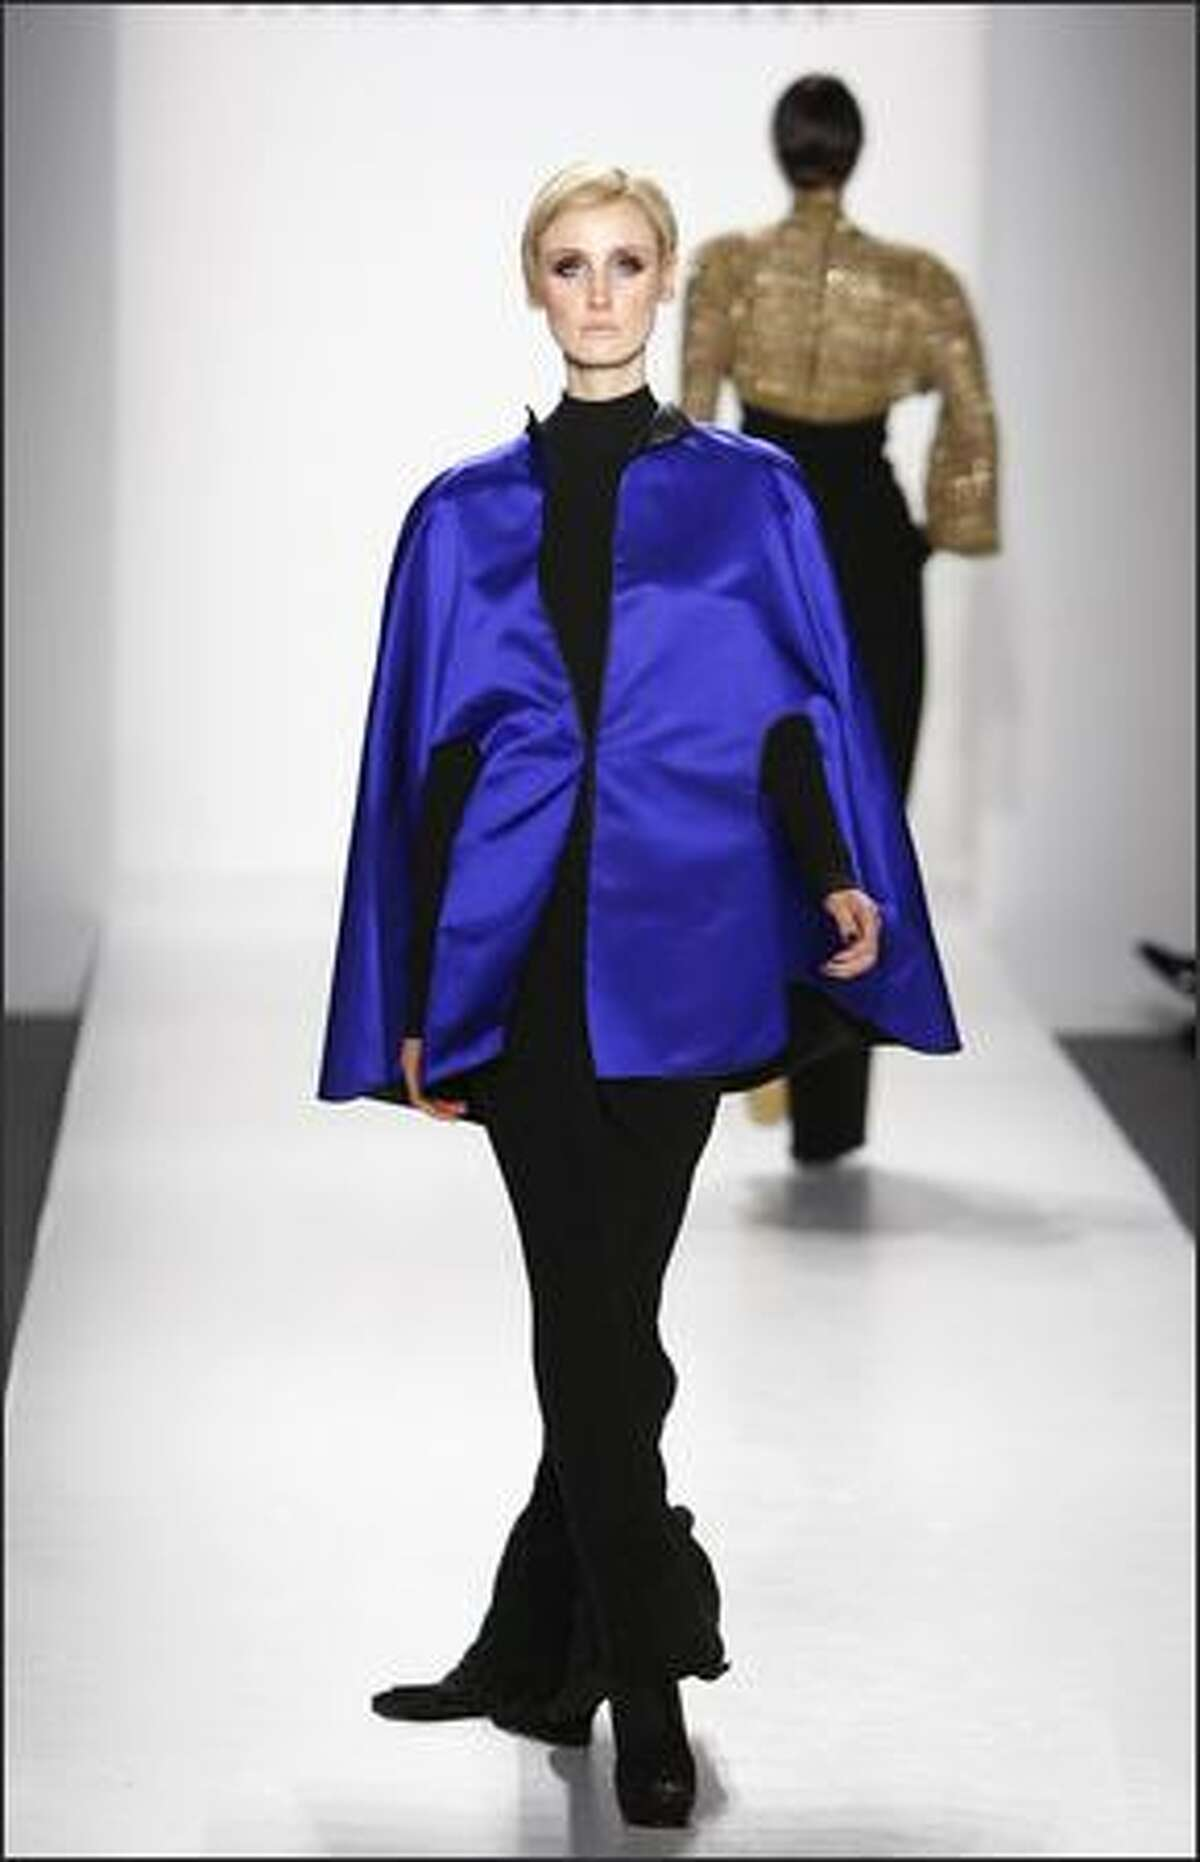 A model walks the runway at the Joanna Mastroianni fall 2008 fashion show during Mercedes-Benz Fashion Week at The Salon at Bryant Park in New York.